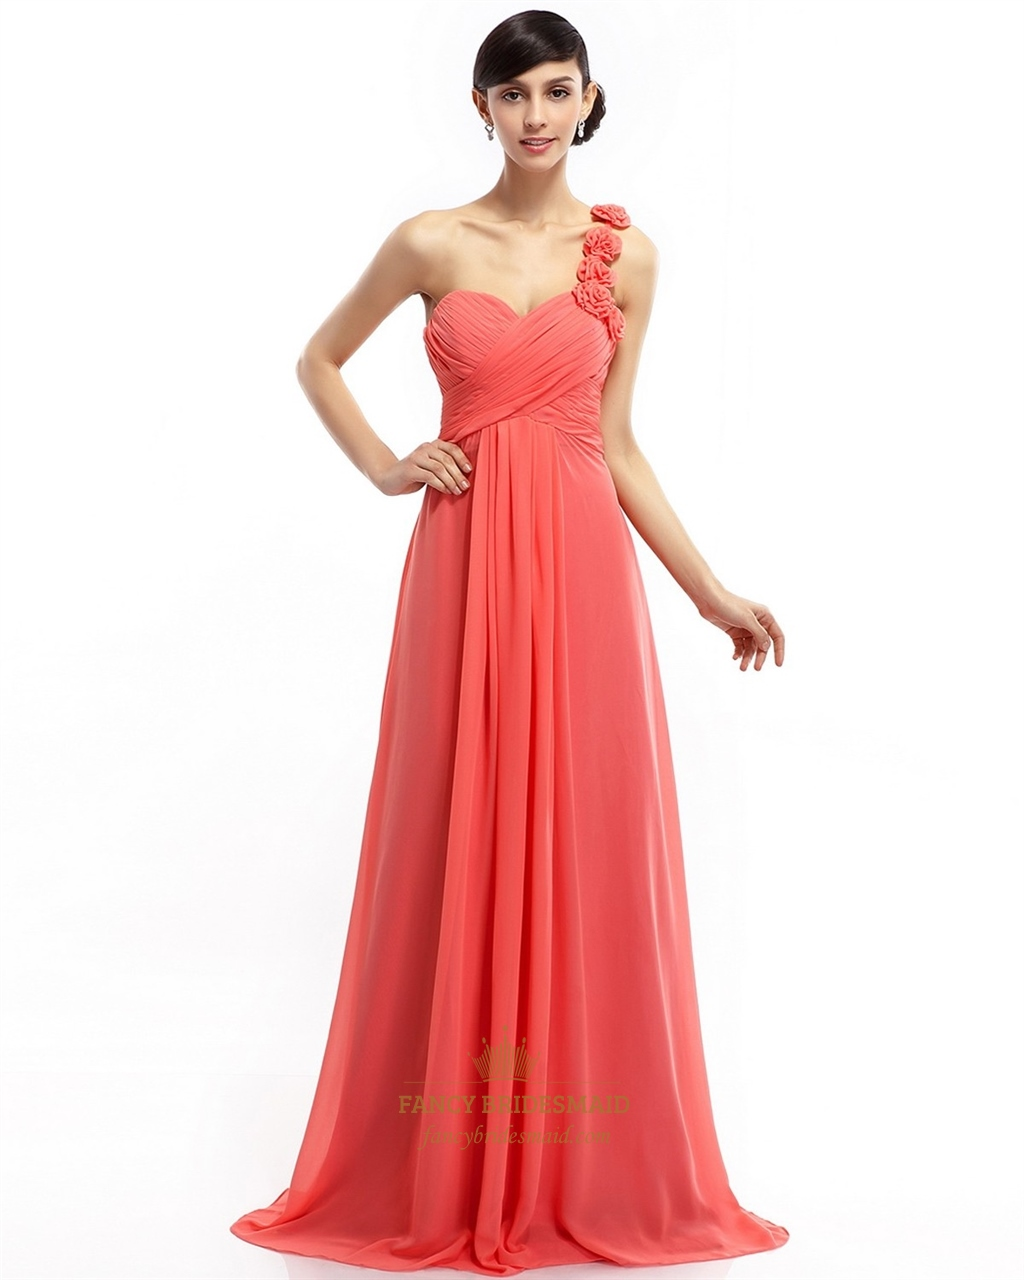 Coral empire one shoulder chiffon bridesmaid dress with ruffle coral empire one shoulder chiffon bridesmaid dress with ruffle flower ombrellifo Image collections